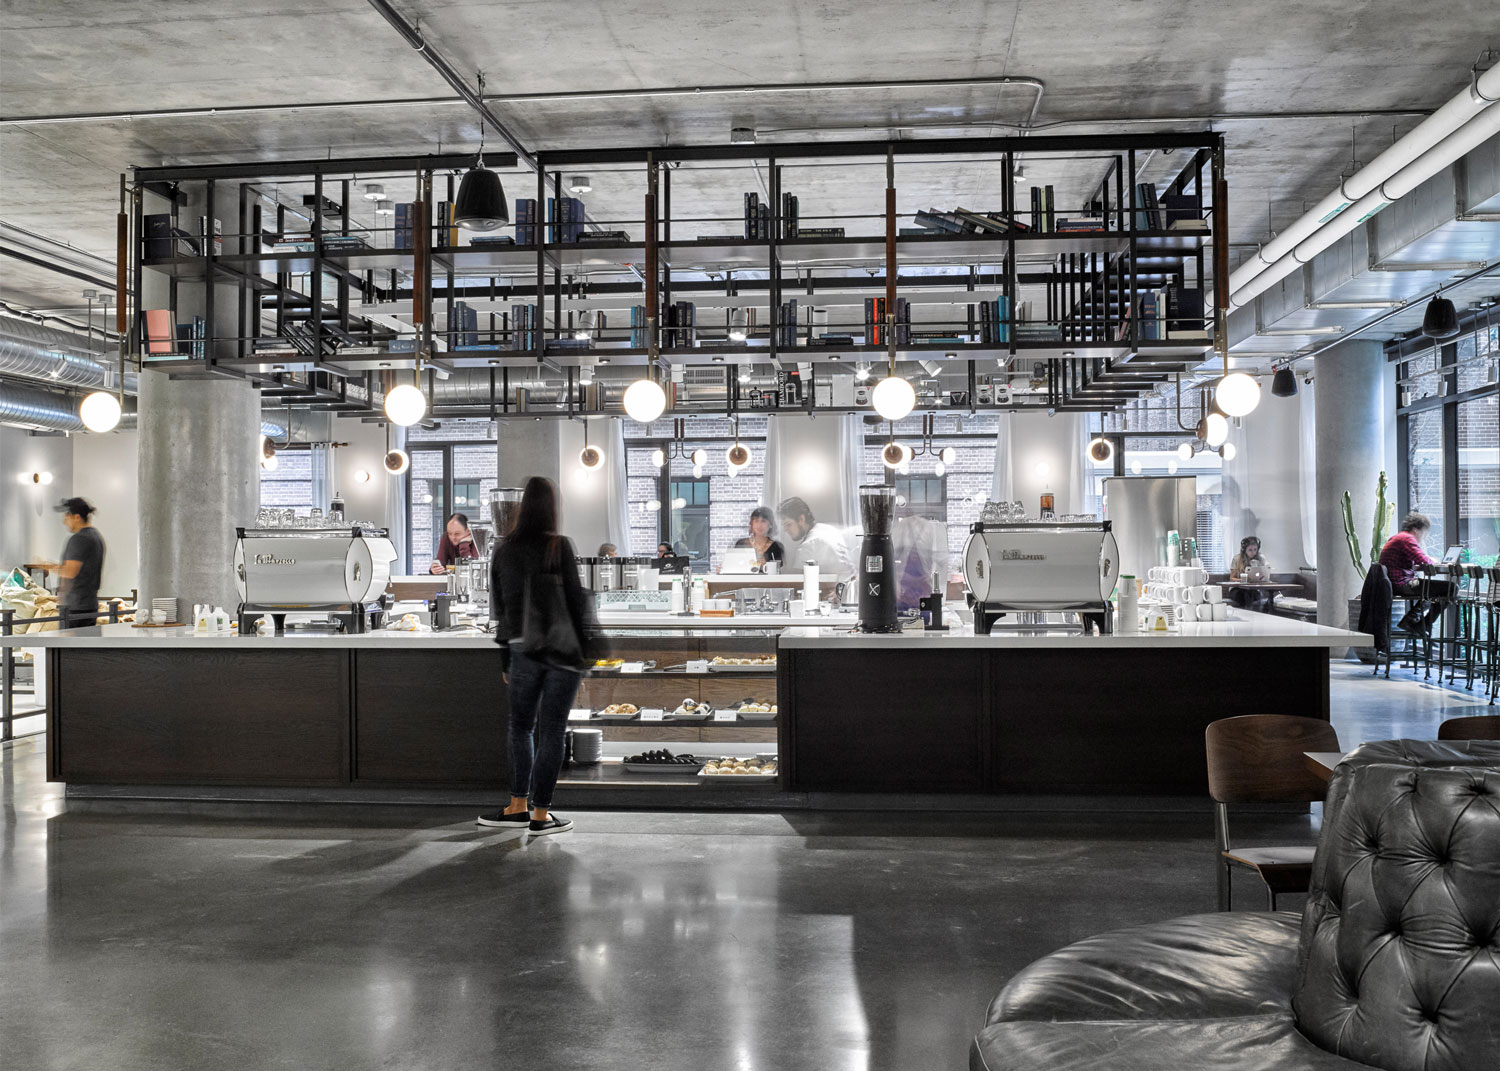 Avroko Designs A Workplace Cafeteria For Dropbox